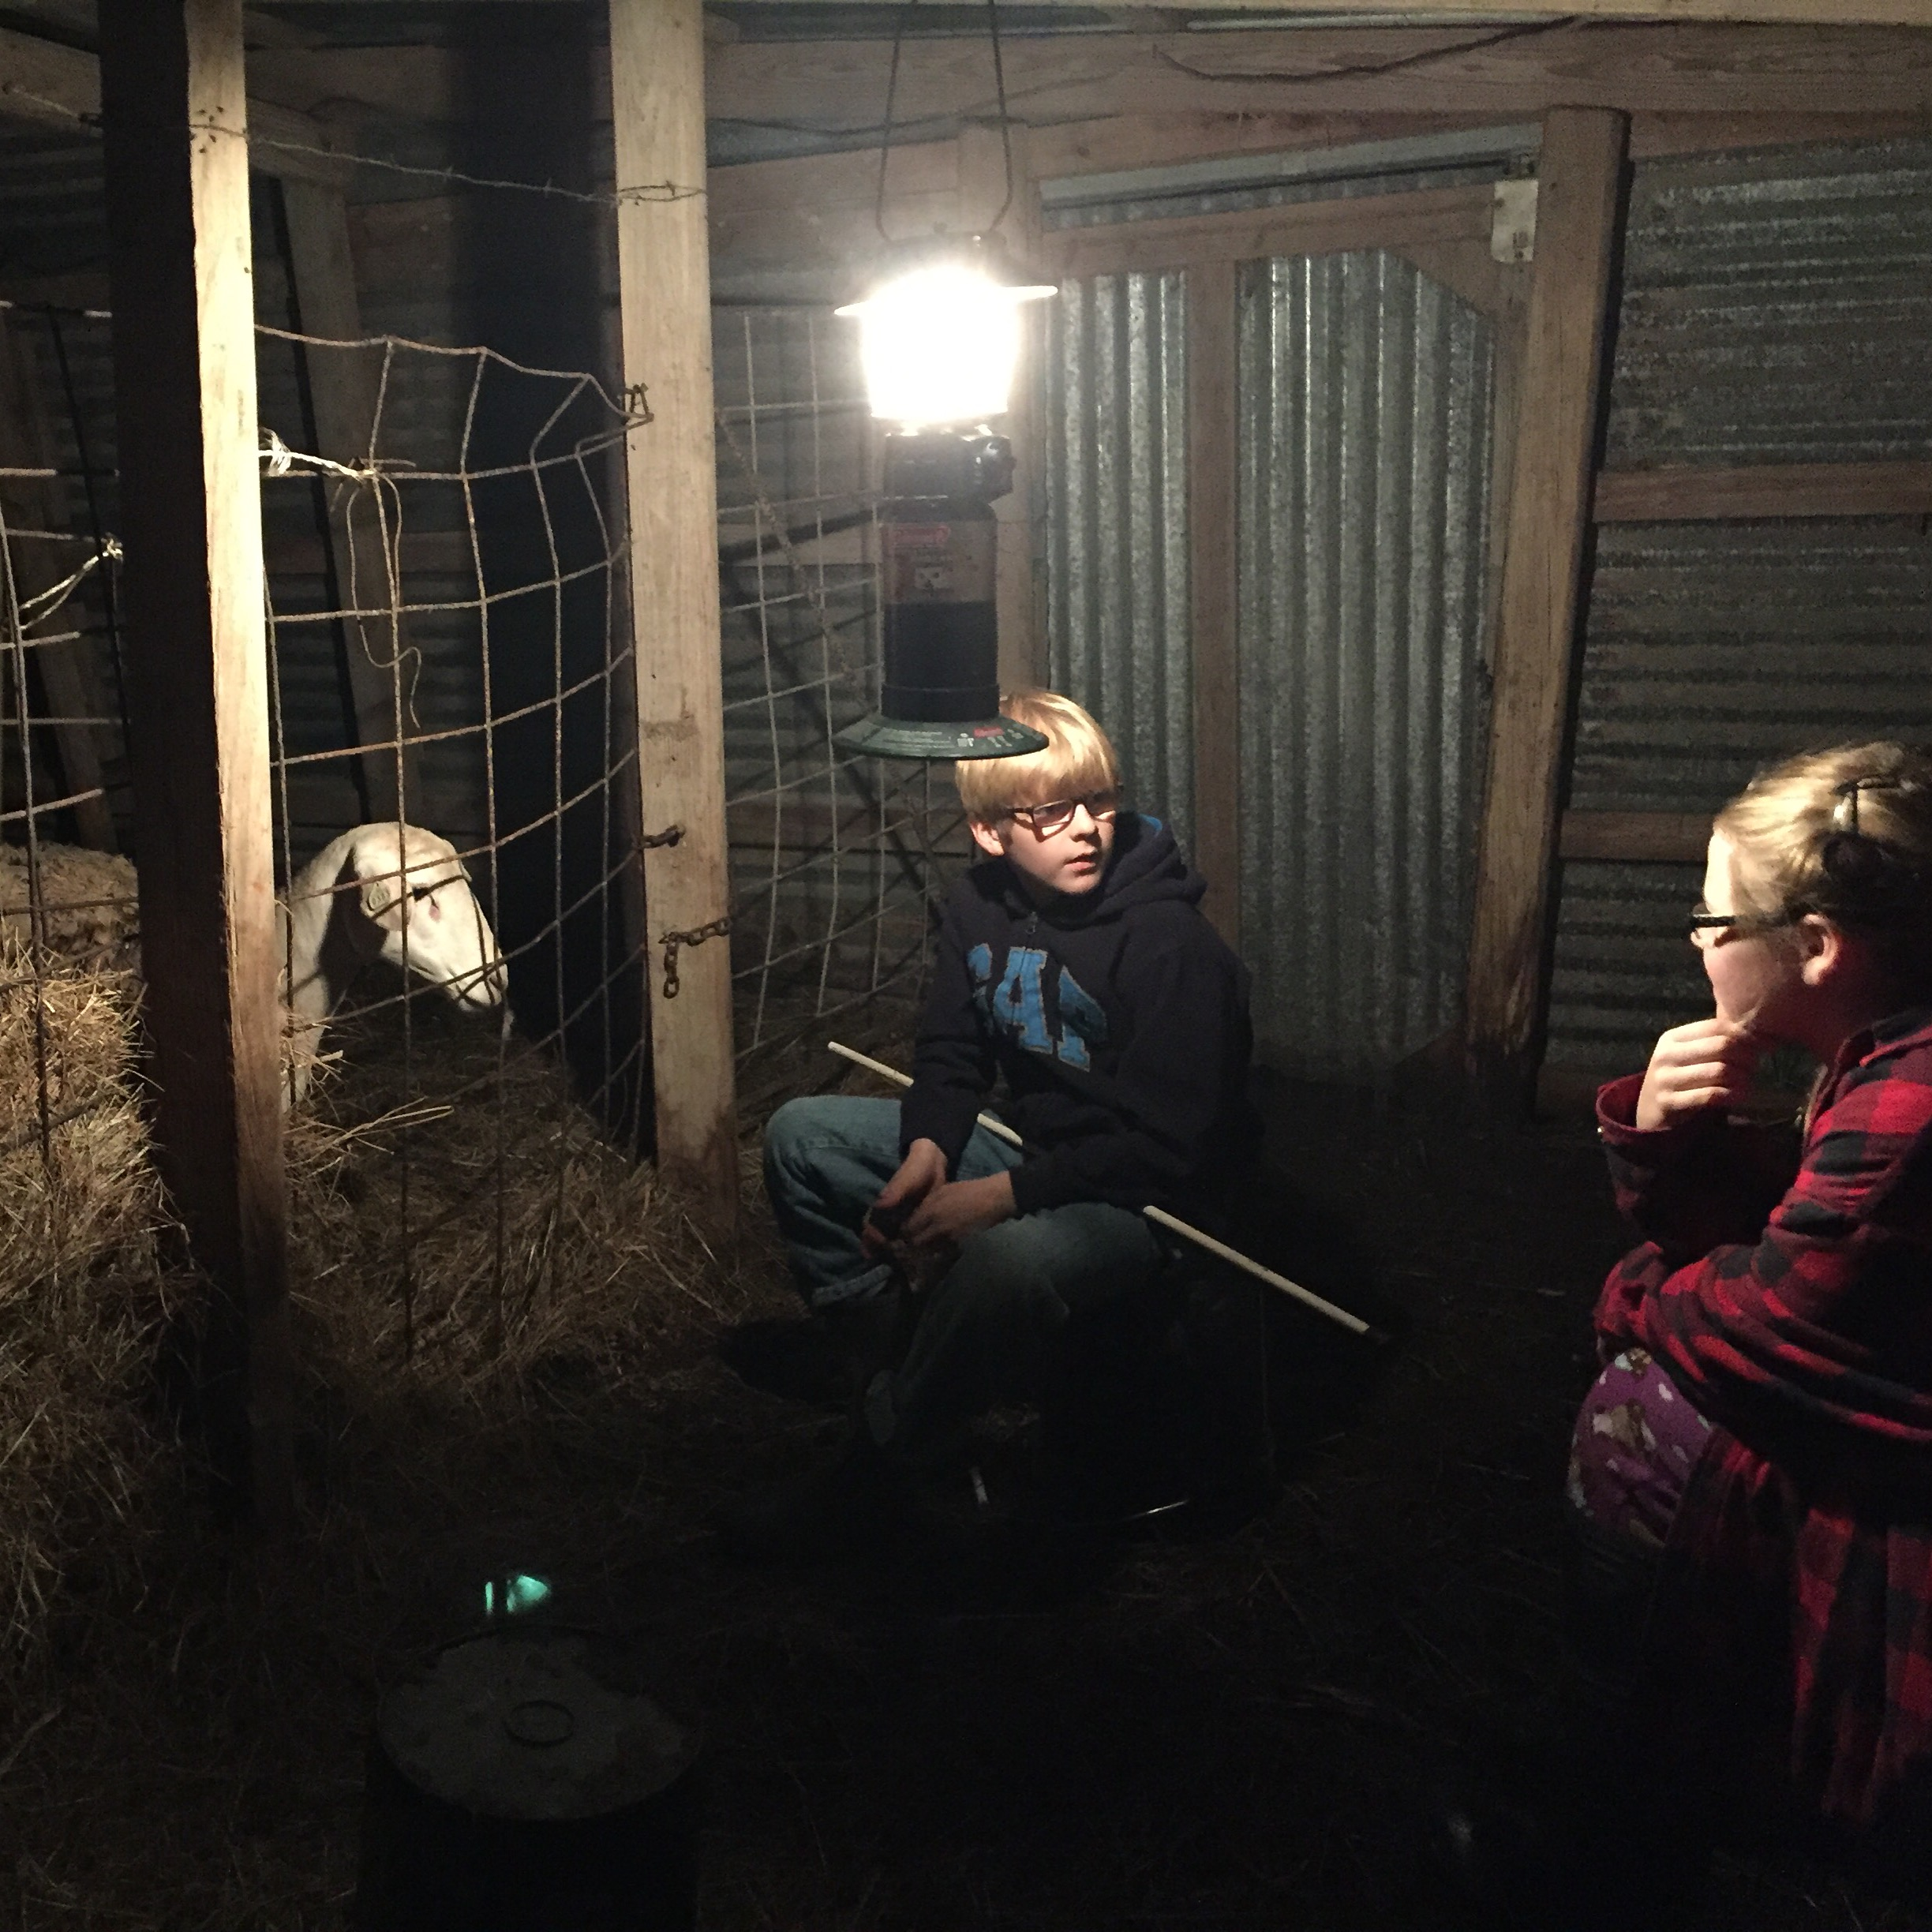 Taken two days before Christmas in 2015.  Late in the cold dark night my kids are waiting for a lamb to be born and assist the ewe if needed.  This is where grit is nurtured. But whose grit is being formed?